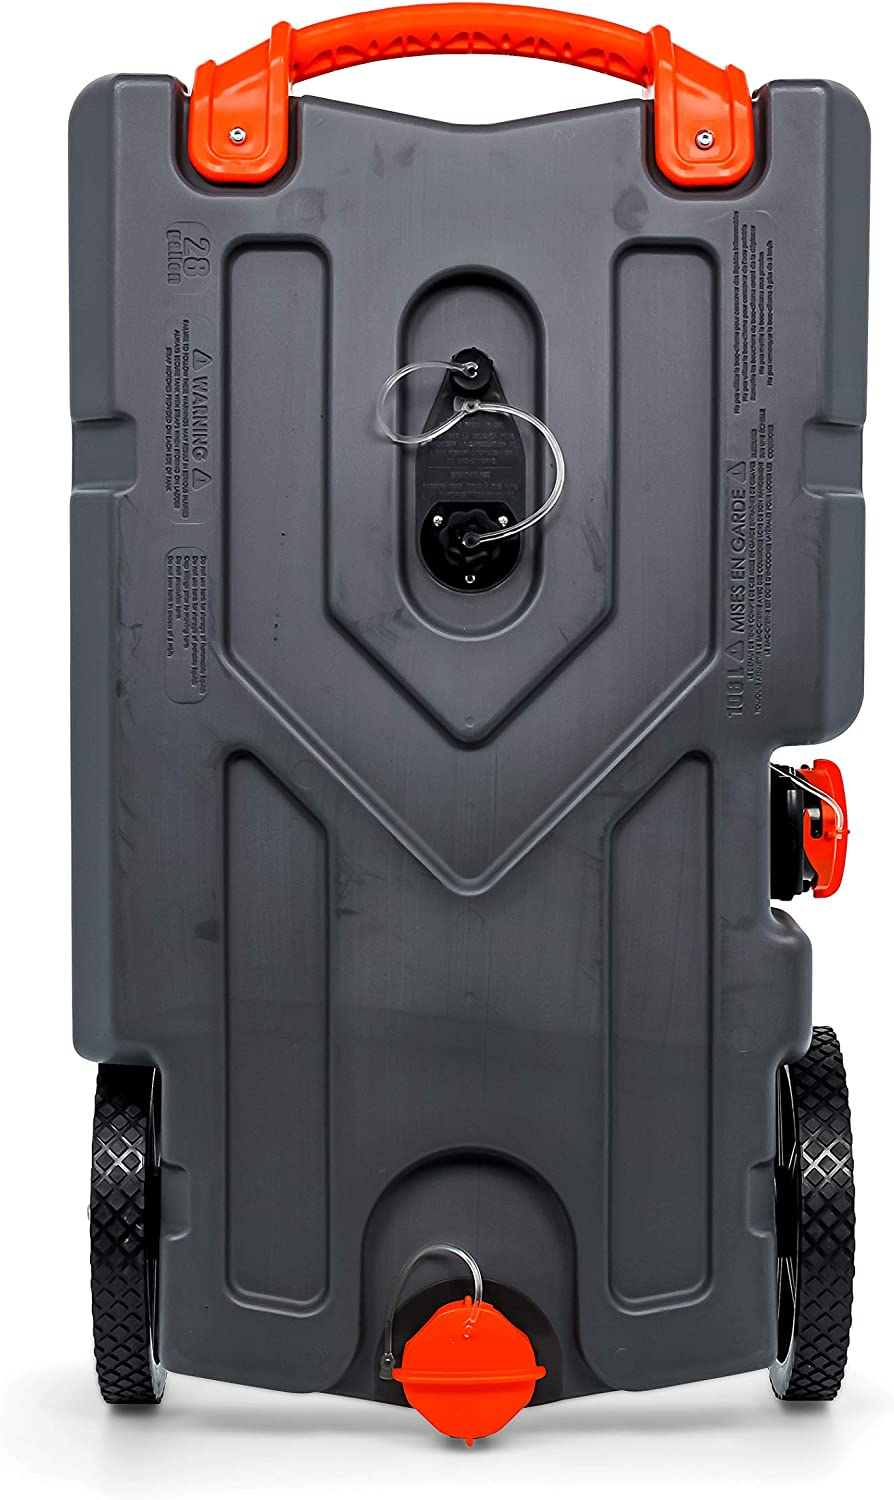 Amazon Com Camco Rhino Heavy Duty 28 Gallon Portable Rv Waste Holding Tank With Hose And Accessories Durable Leak Free And Odorless Rv Tote Tank 39004 Automotive